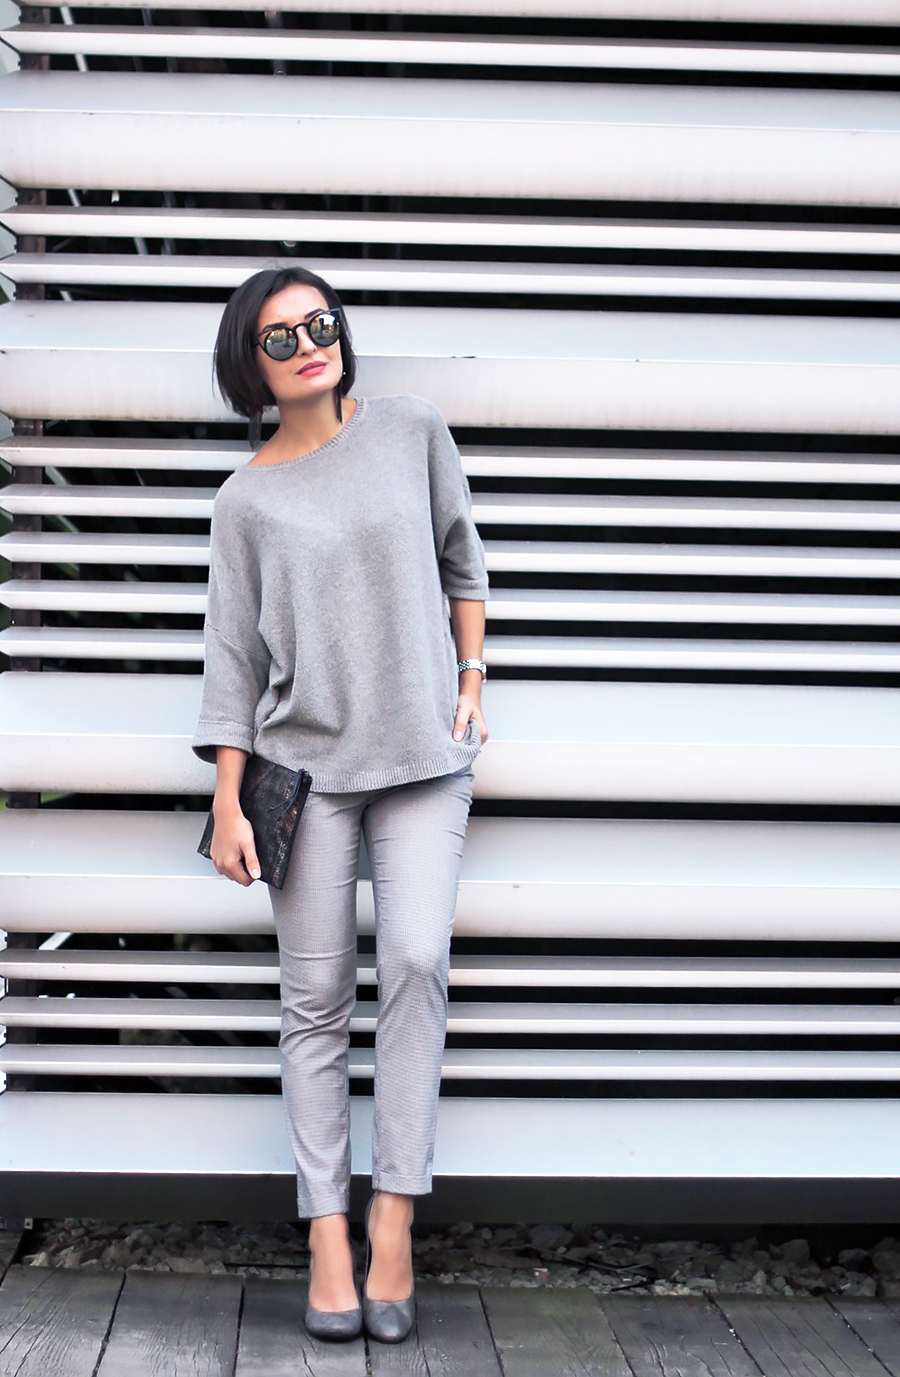 gray outfit ecco shape shoes